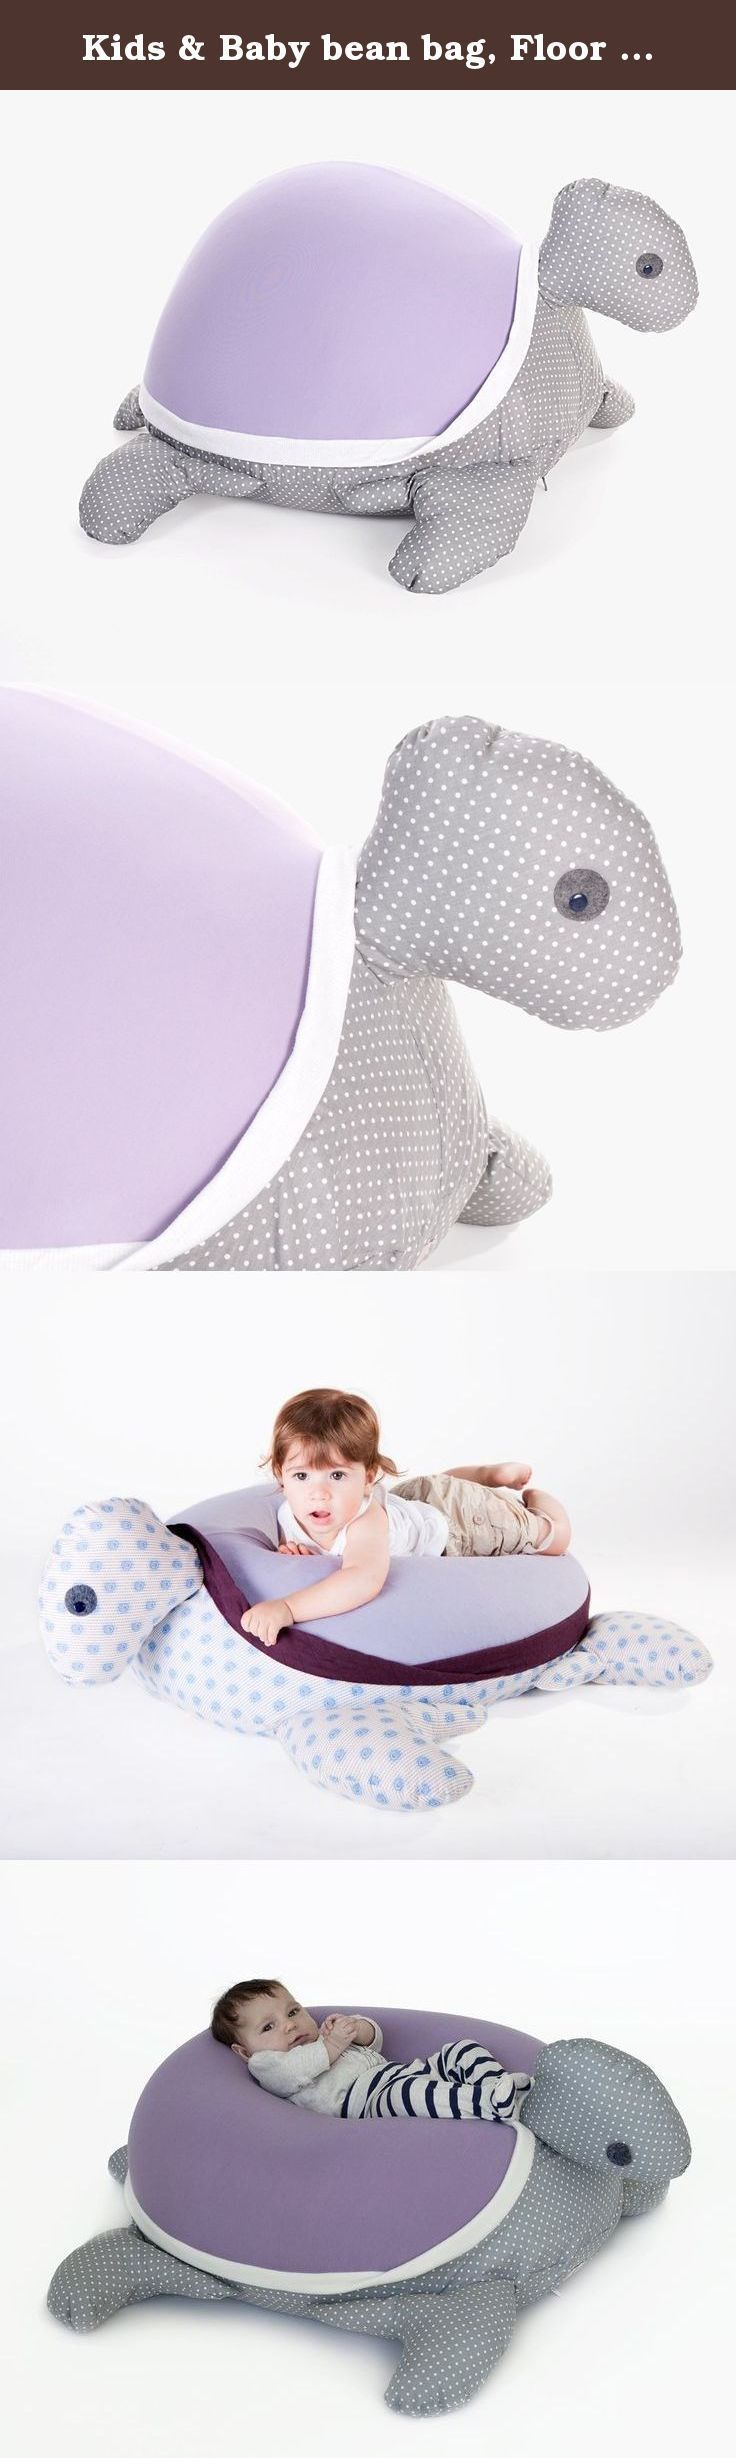 Kids Baby Bean Bag Floor Pillow Giant Animal Shaped Turtle Bean Bag Chair P Baby Bean Bag Animal Pillows Giant Animals